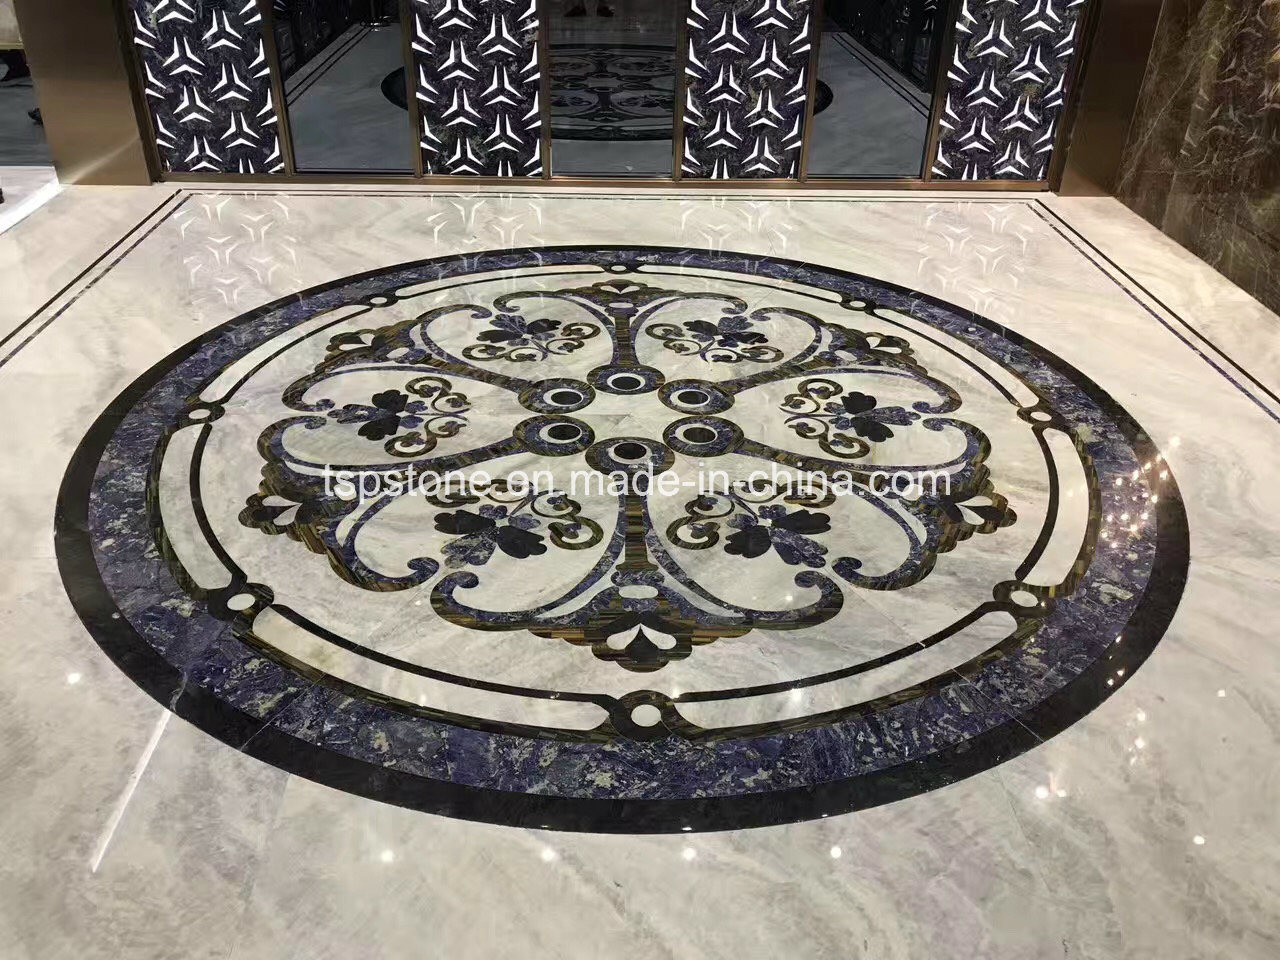 China Natural Stone Waterjet Marble For Floor Flooring Wall Kitchen Lobby Slab Tile Mosaic Pattern Border Medallion Floor Tiles With Metal Inlay China Marble Marble Slab